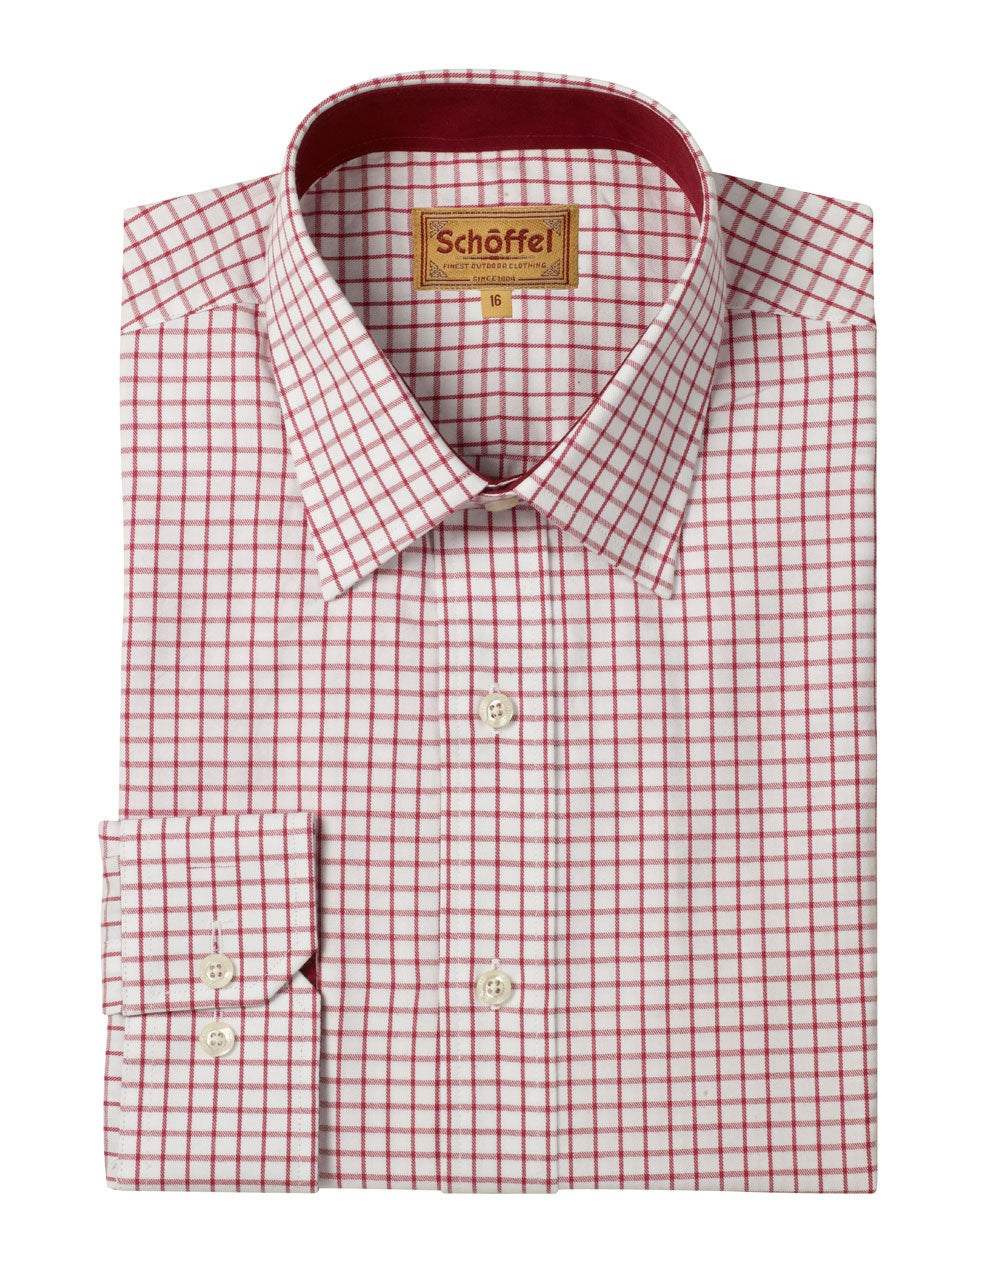 Schoffel Cambridge Checked Shirt for Men in Red